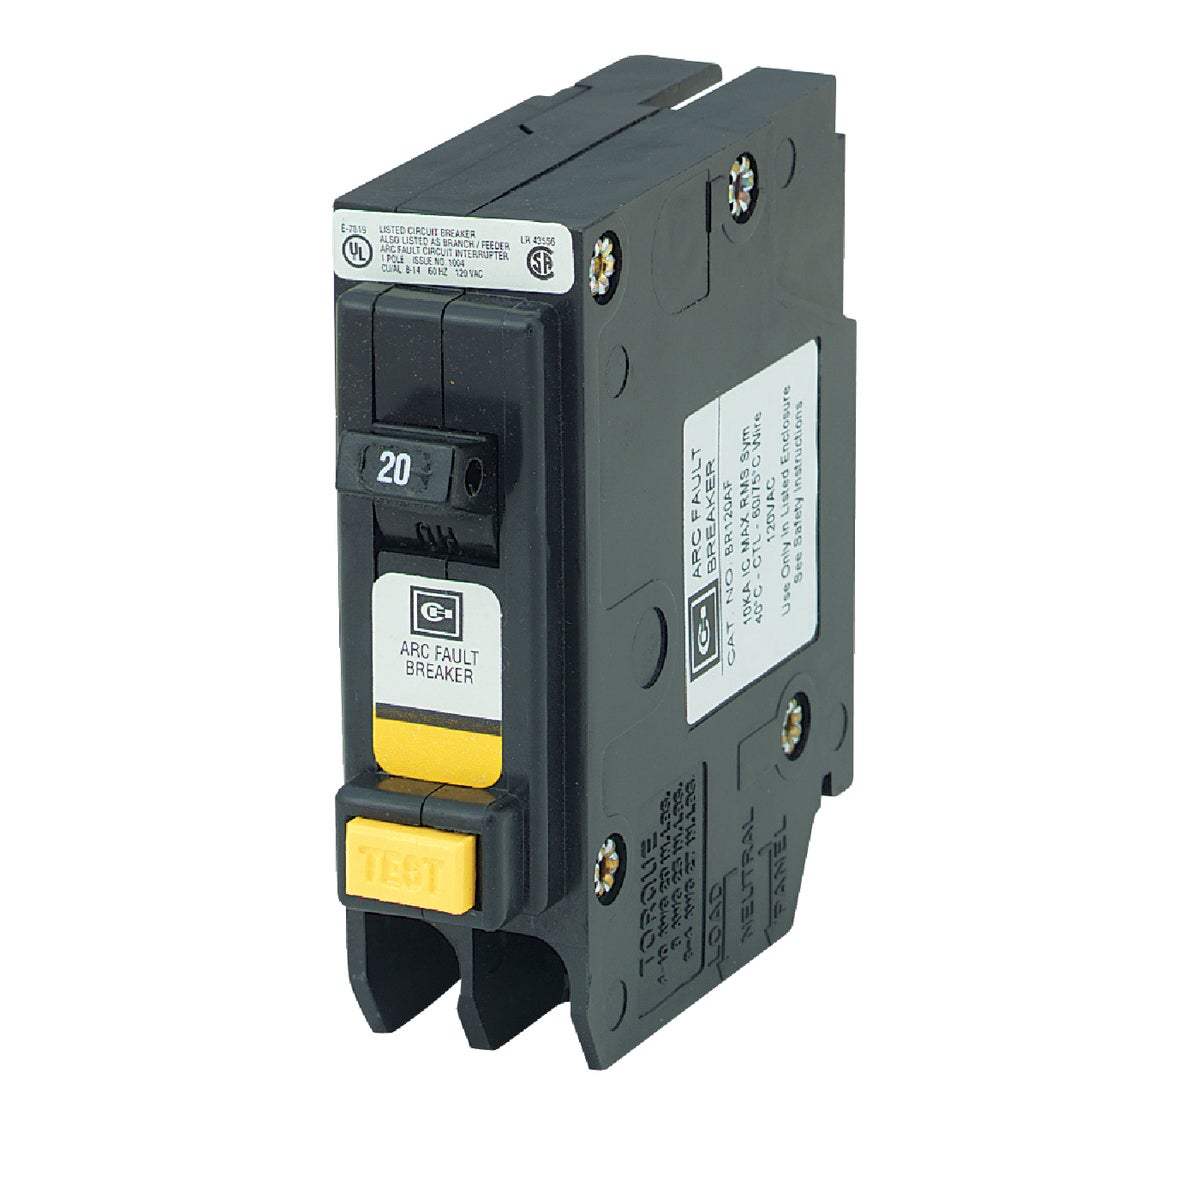 20A ARC FAULT BREAKER - BR120AF by Eaton Corporation